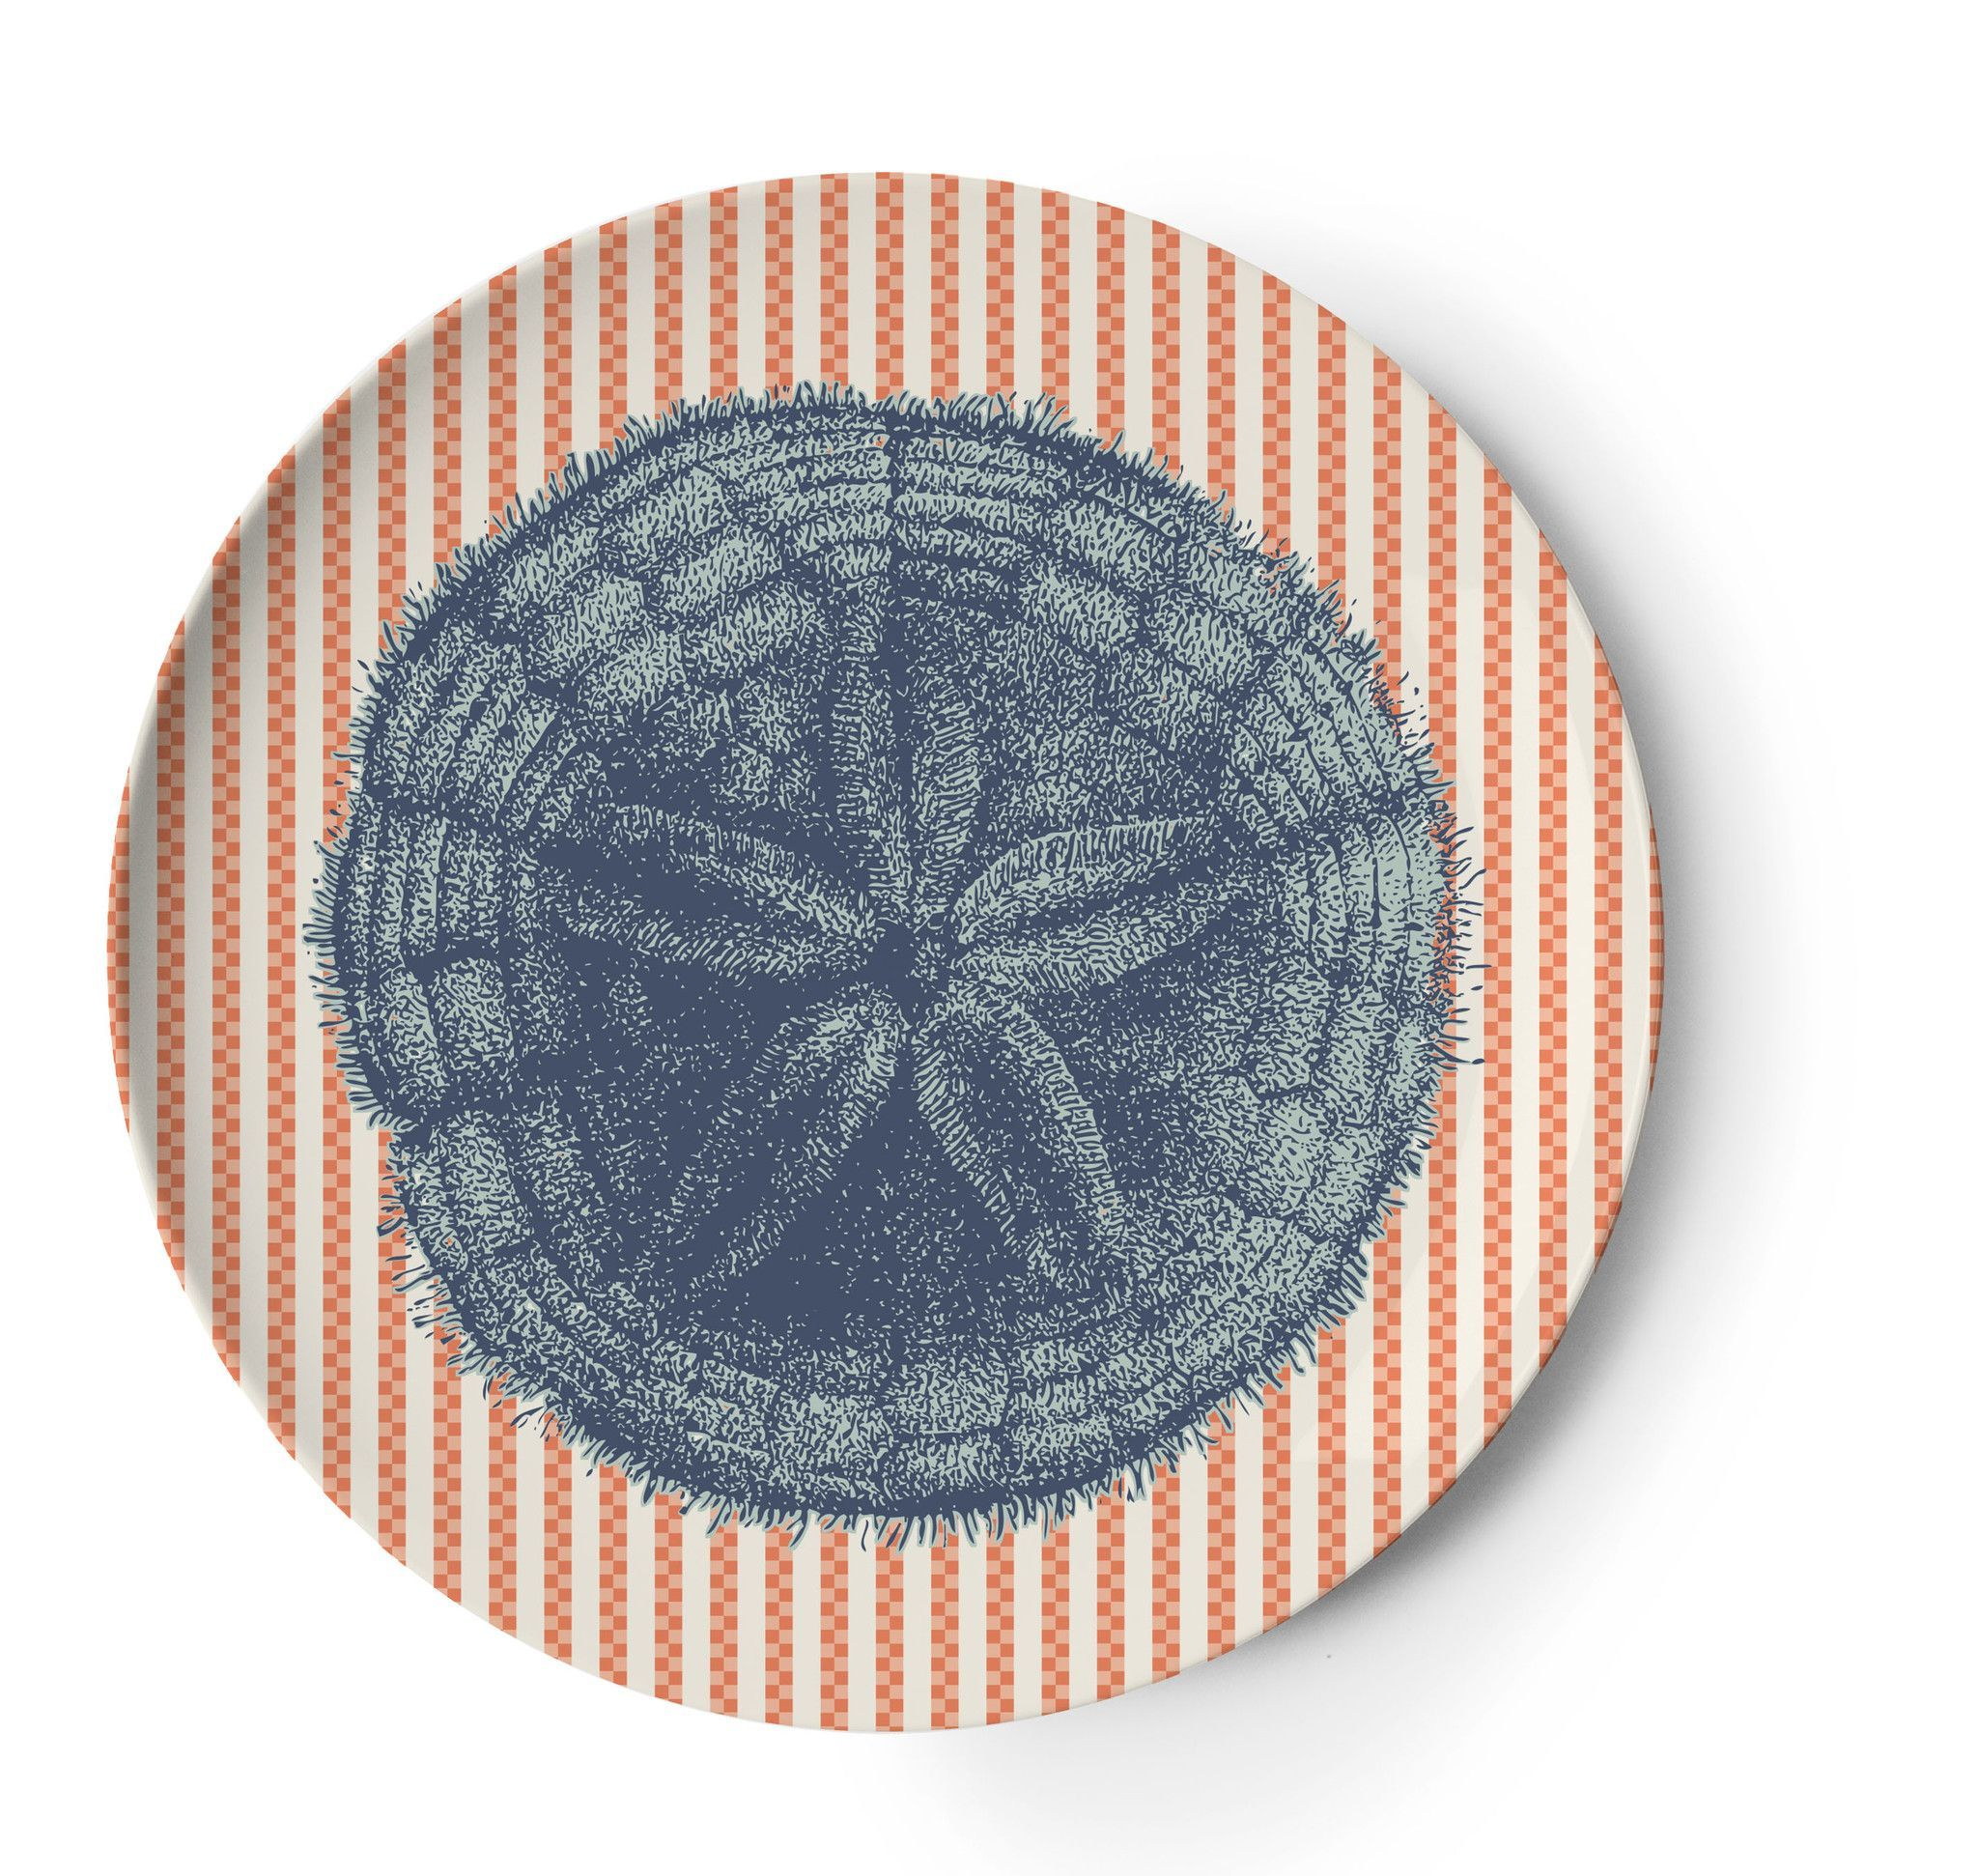 Vineyard Set of Four Coaster Dishes design by Thomas Paul